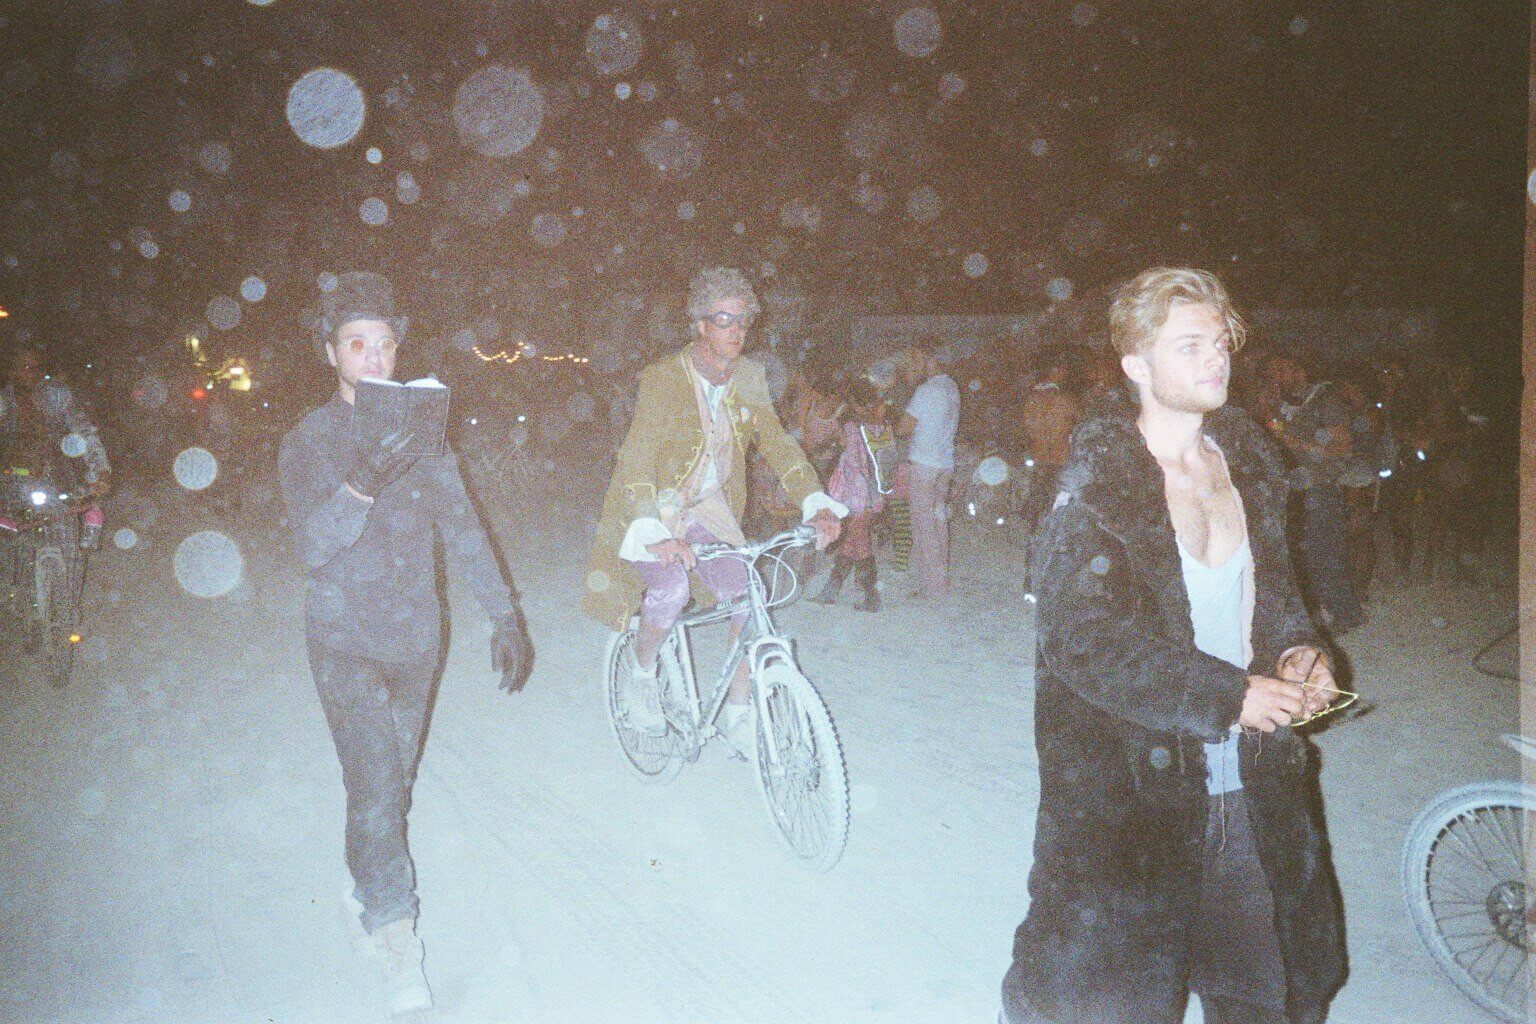 Madburner Julian (right) Burning Man 2012 Playa